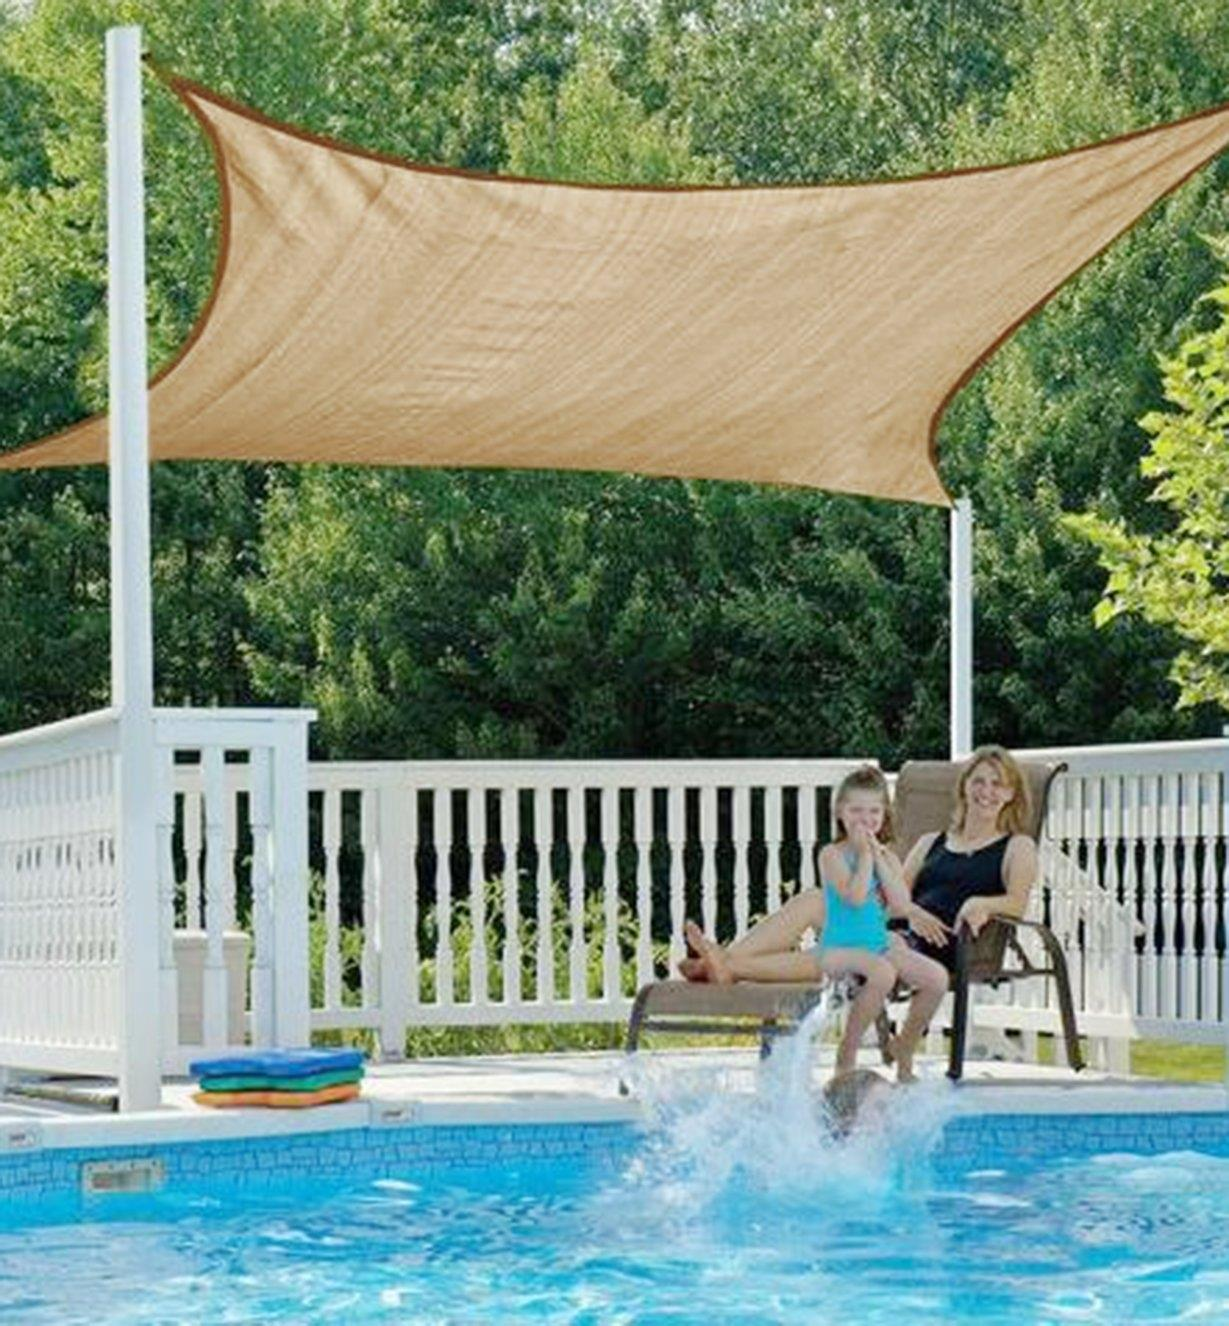 Square Shade Sail installed over a swimming pool